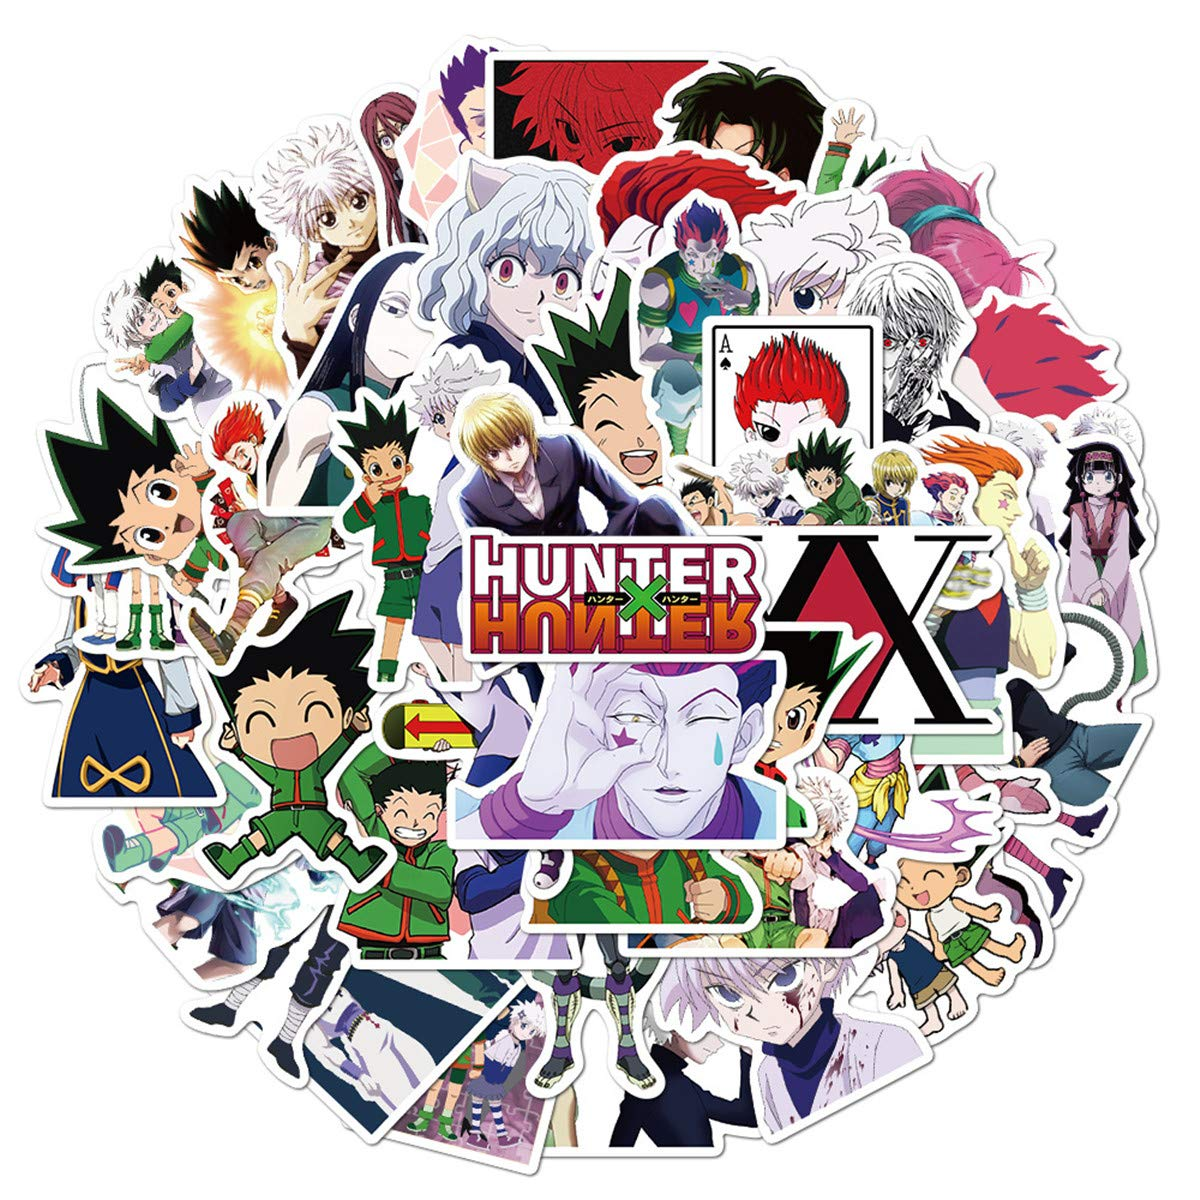 Japanese Cartoon Hunter X Hunter Stickers Pack 50 Pcs Decals of Anime Bumper Stickers Decals for Cars Motorcycle Portable Luggages Ipad Laptops Waterproof Sunlight-Proof (Hunter X Hunter)